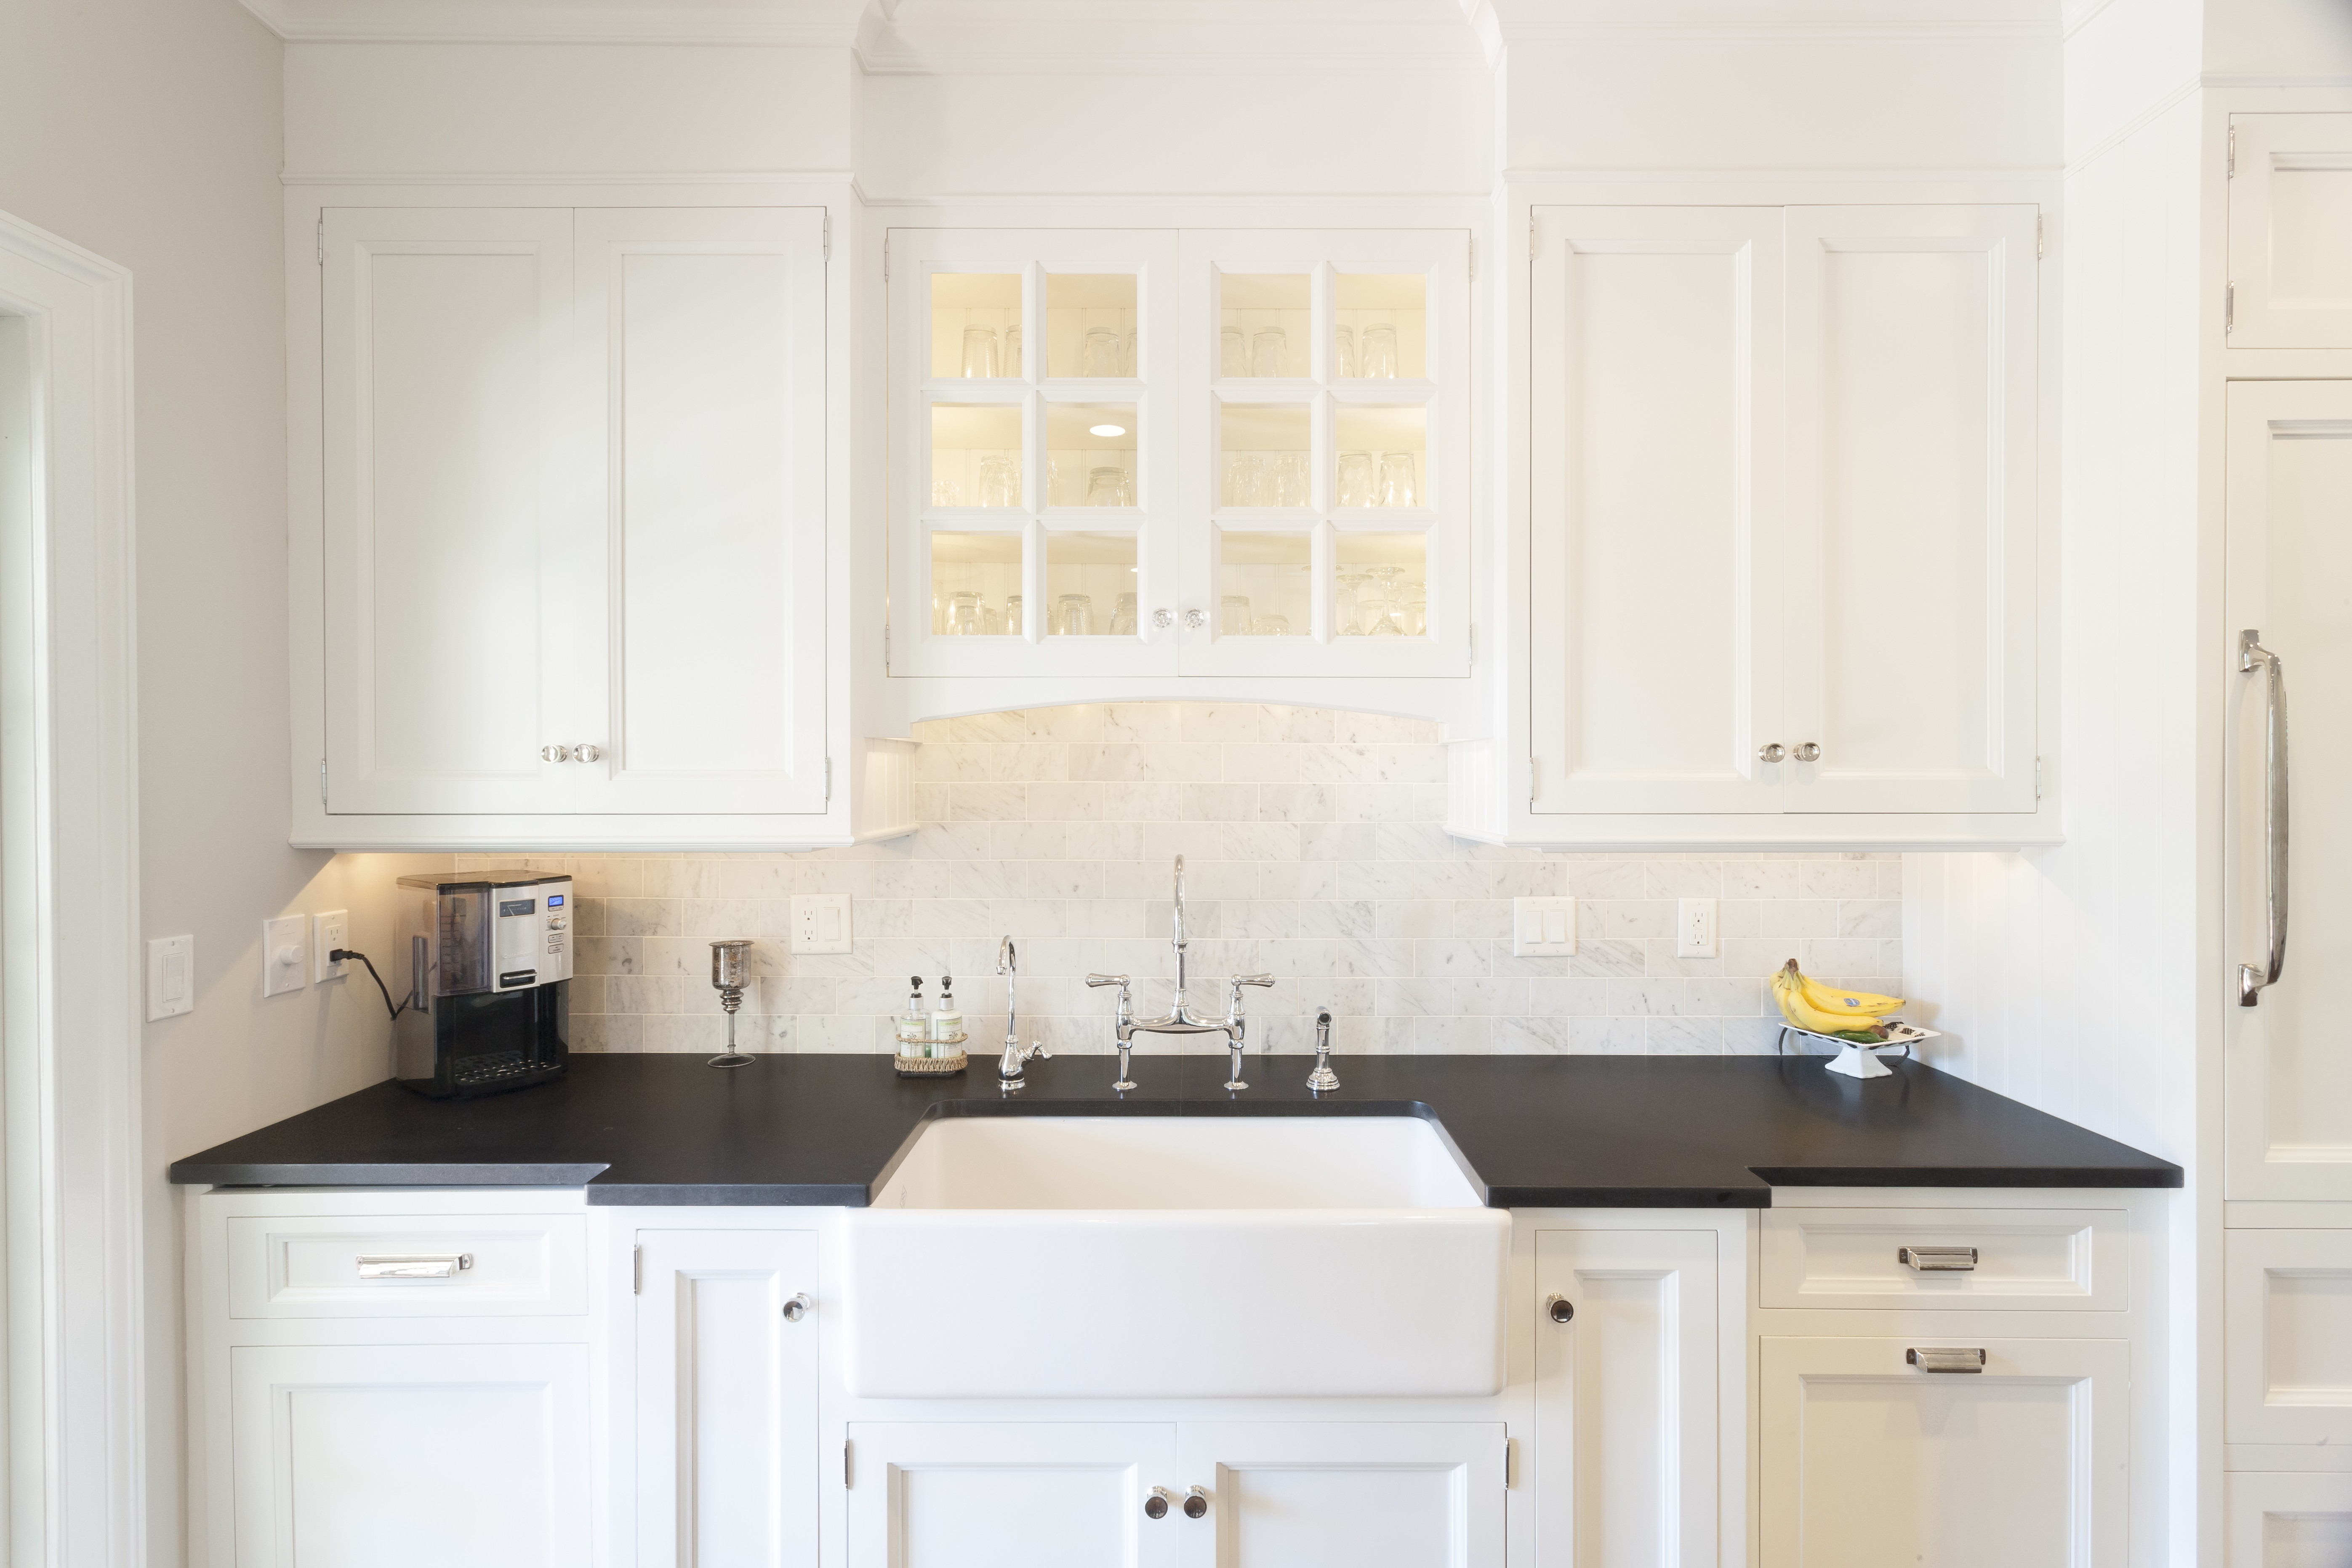 White Kitchen Cabinets Are The Chameleons Of The Kitchen Design World. They  Match Perfectly With Any Style, Whether Modern And Classy Or Youthful And  ...